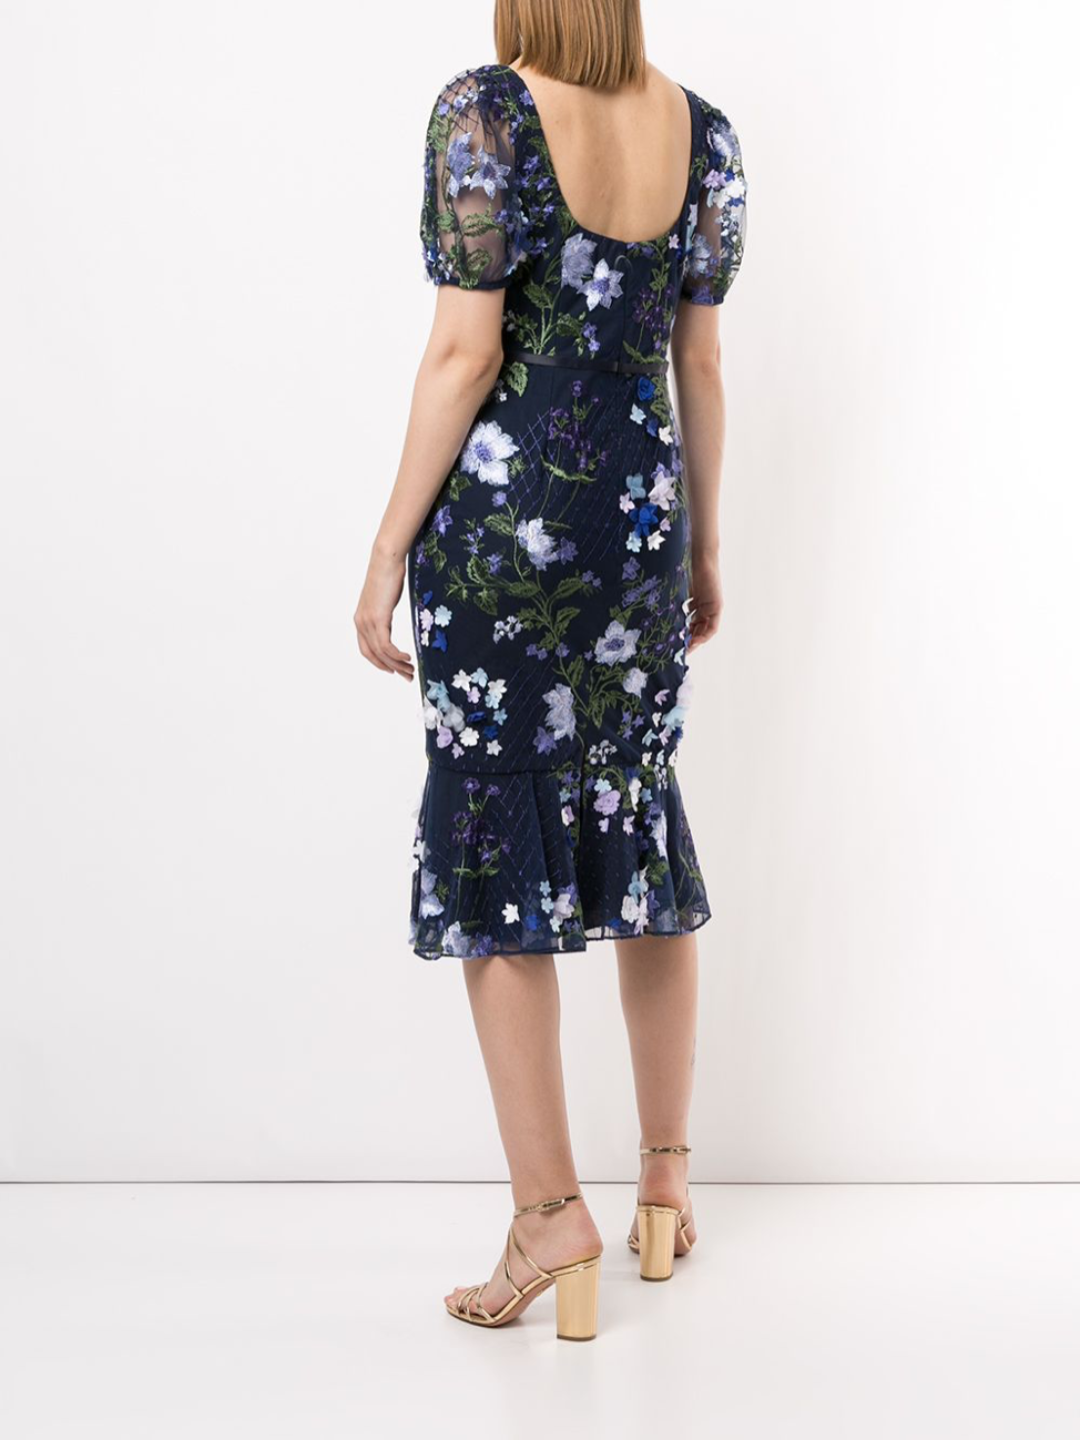 Sleeveless Floral Embroidered Cocktail Dress